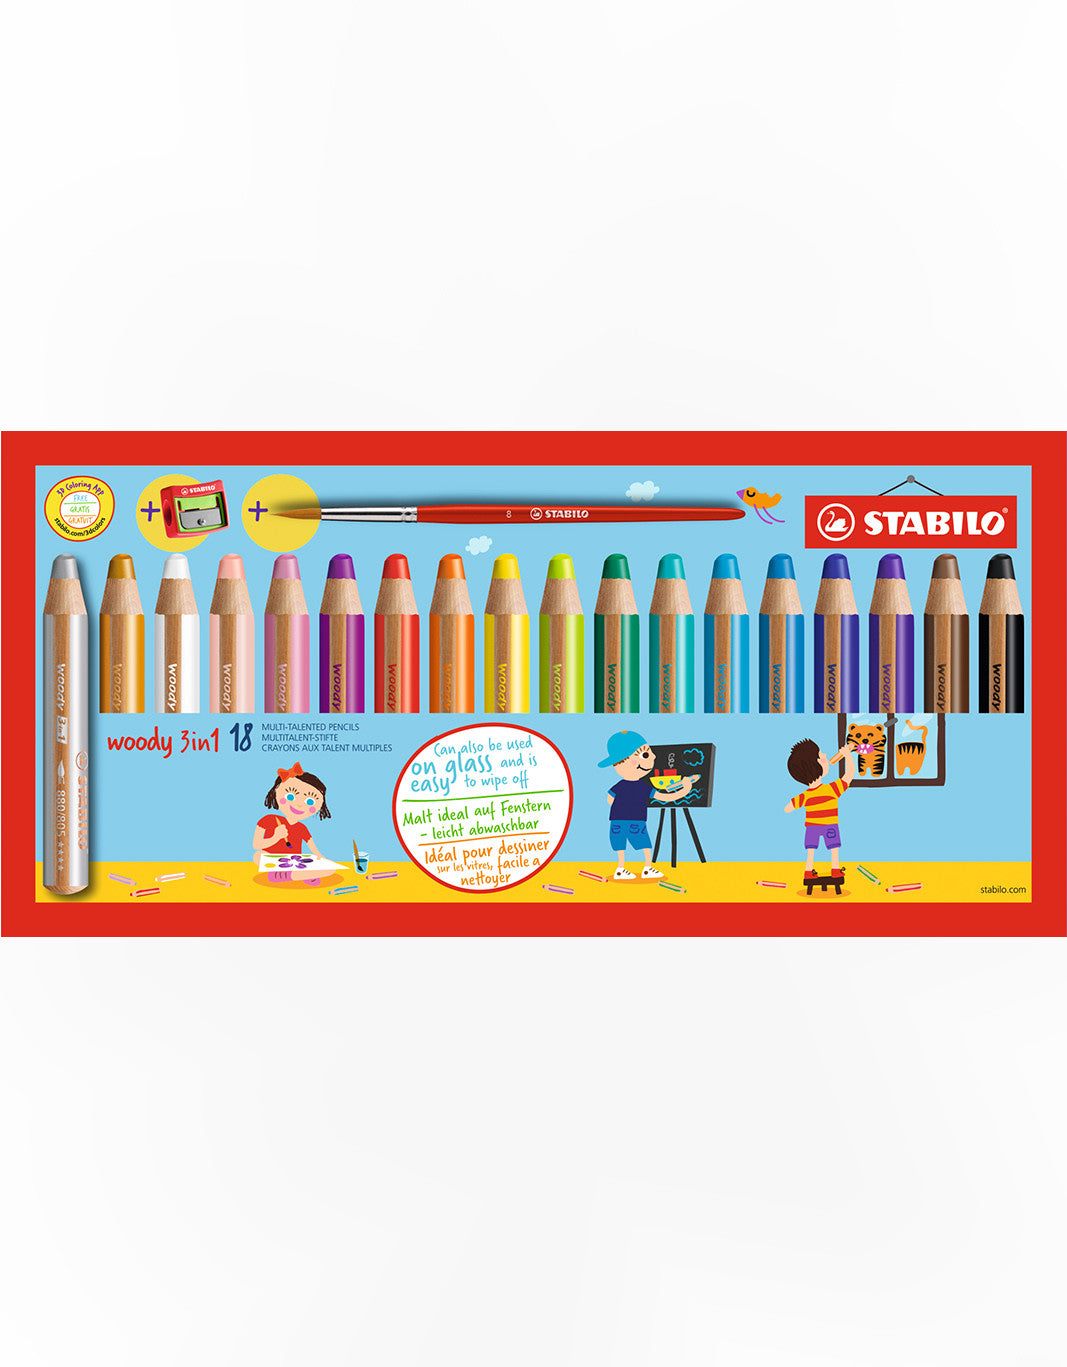 STABILO woody 3 in 1 colouring